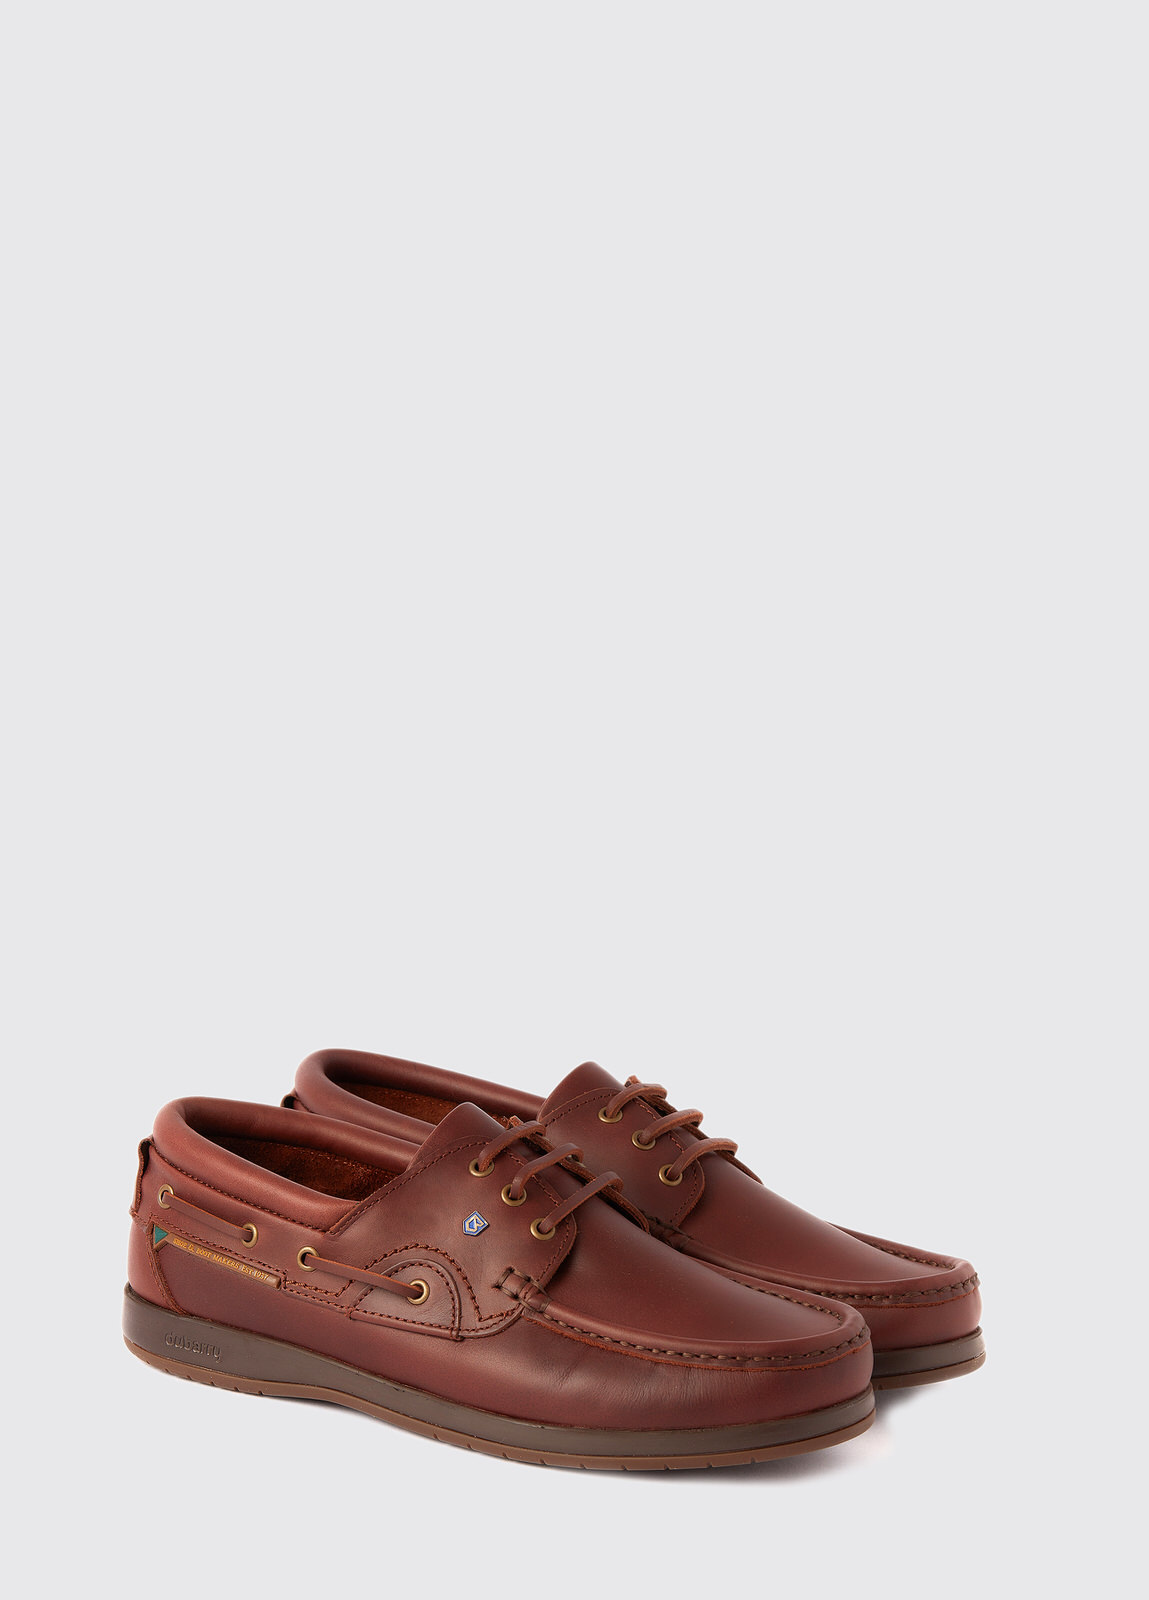 Commodore XLT Deck Shoe - Mahogany